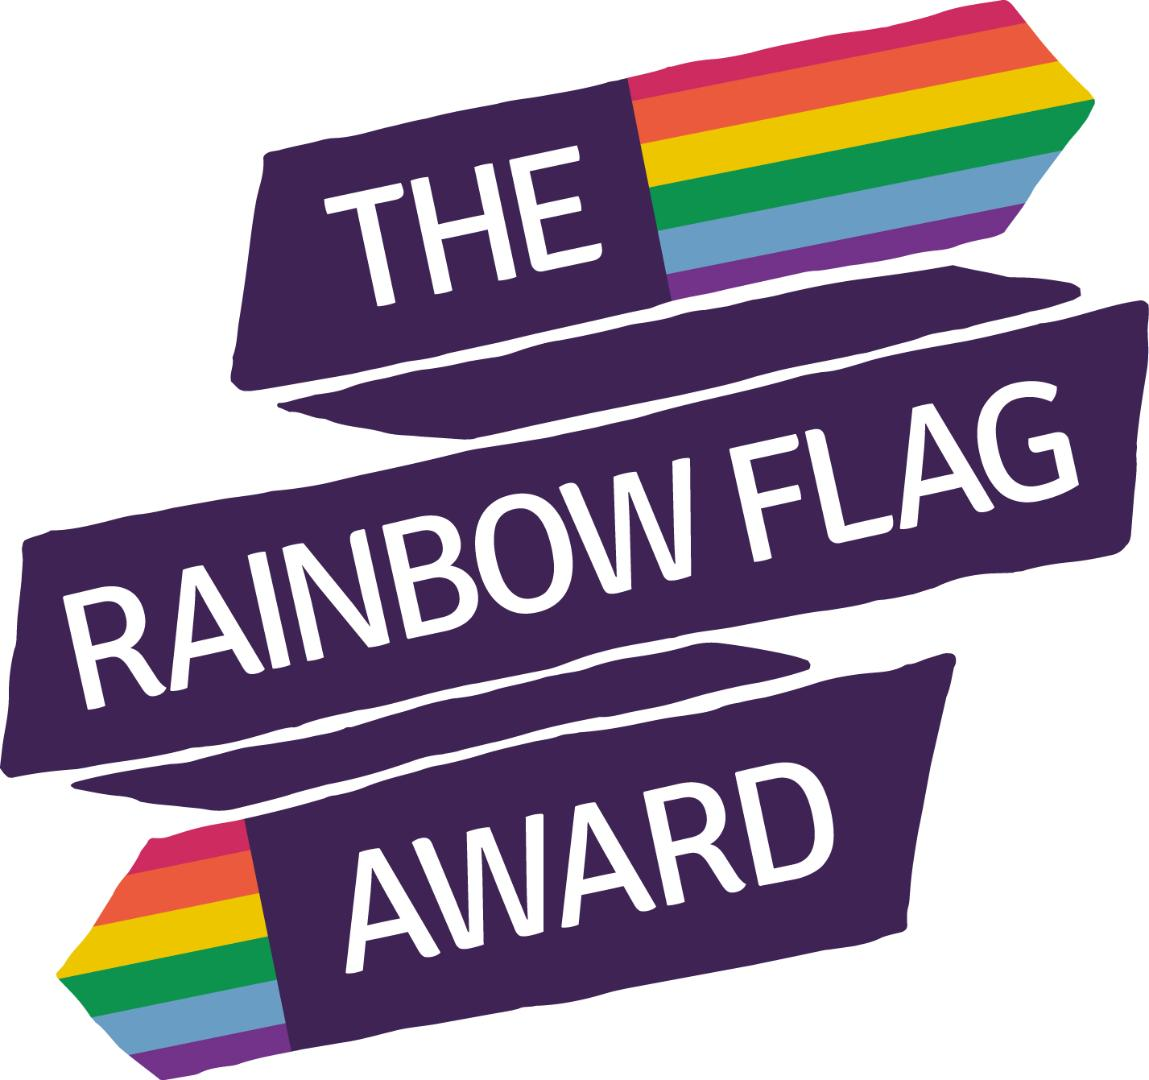 RainbowFlagAward-banner-logo-MAIN